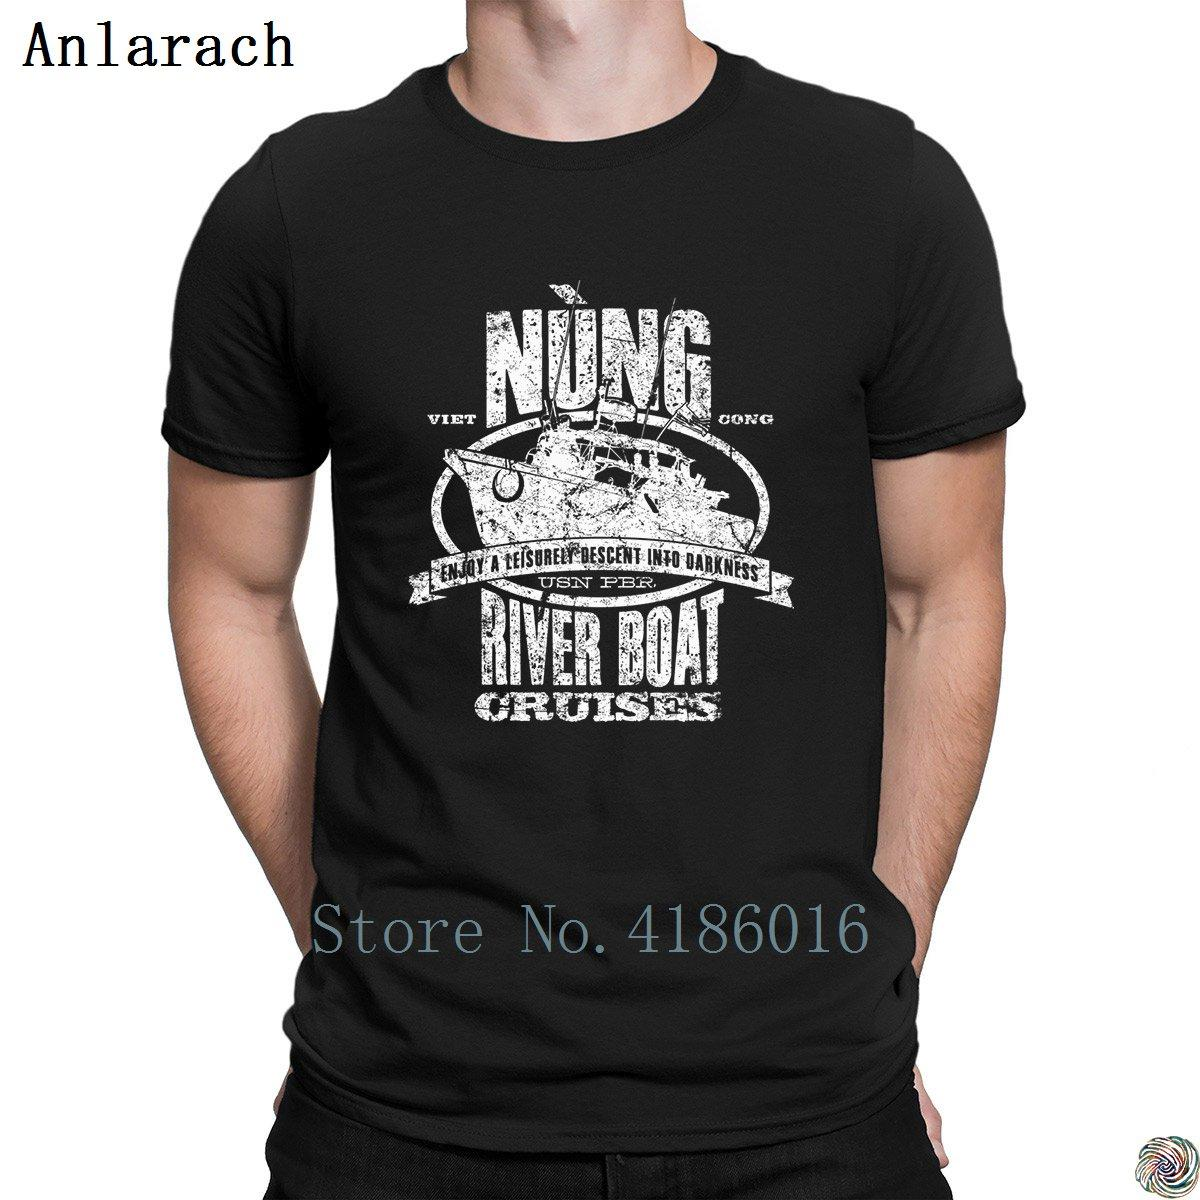 dd204fc7 Nung River Boat Cruises t-shirts Pop Top Tee The new Pattern Print men's  tshirt round Neck Clothes Spring Anti-Wrinkle